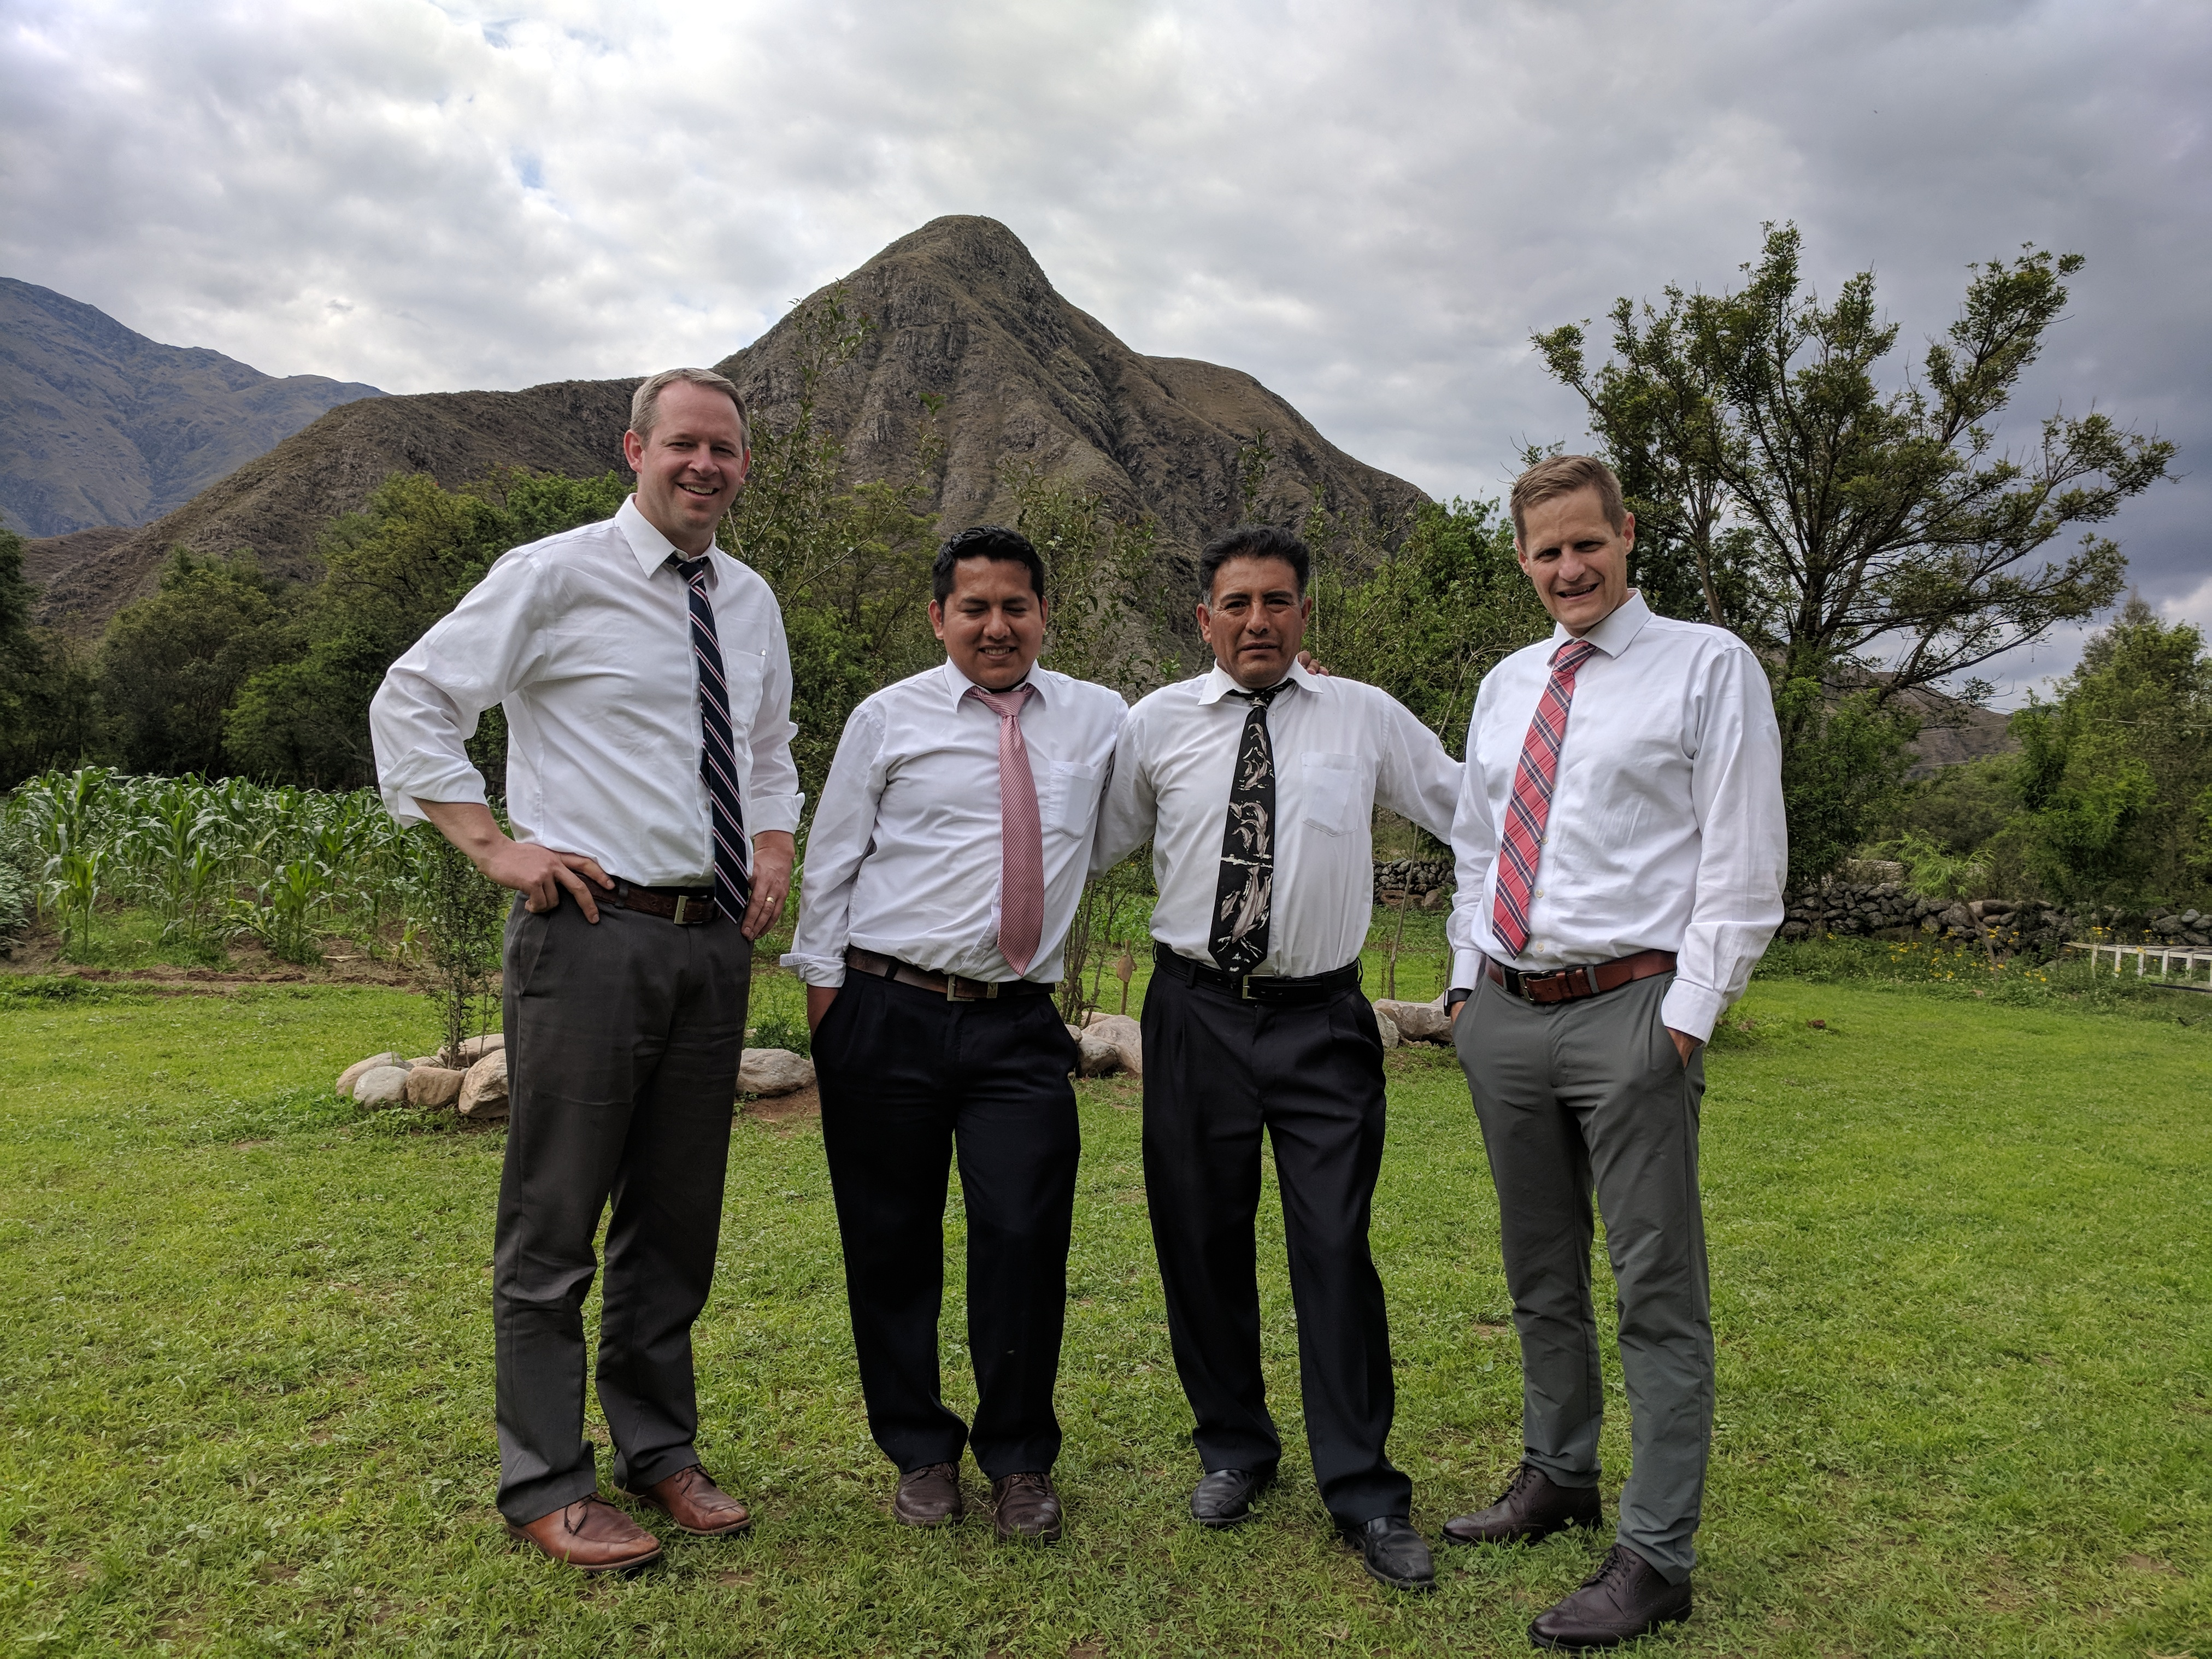 From left: David McConkie, Franz Sanchez, Naval Sanchez and Kevin Burke in the mountains outside of Tarija, Bolivia. McConkie and Burke taught and baptized the Sanchez family 20 years ago and returned to visit them in October this year.